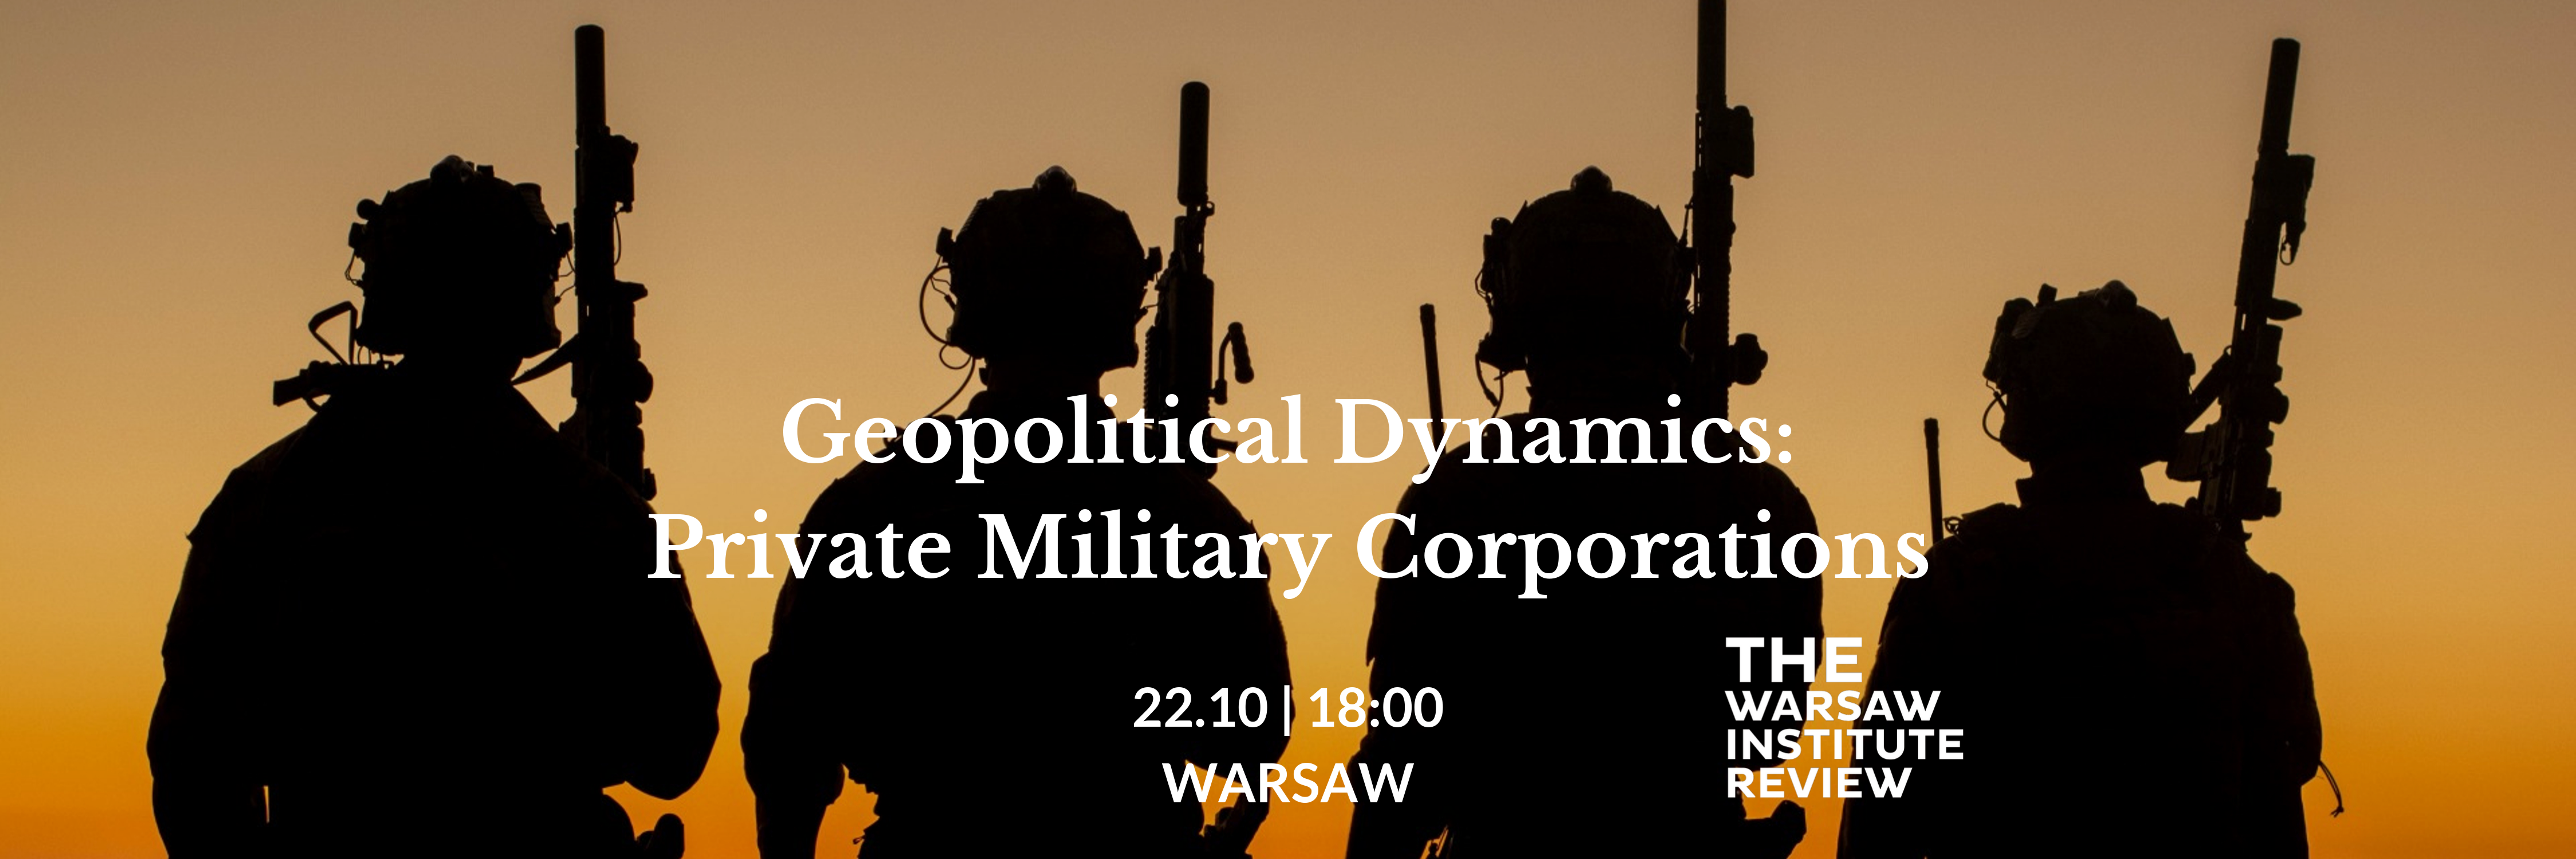 Geopolitical Dynamics: Private Military Corporations – expert debate of the Warsaw Institute Review